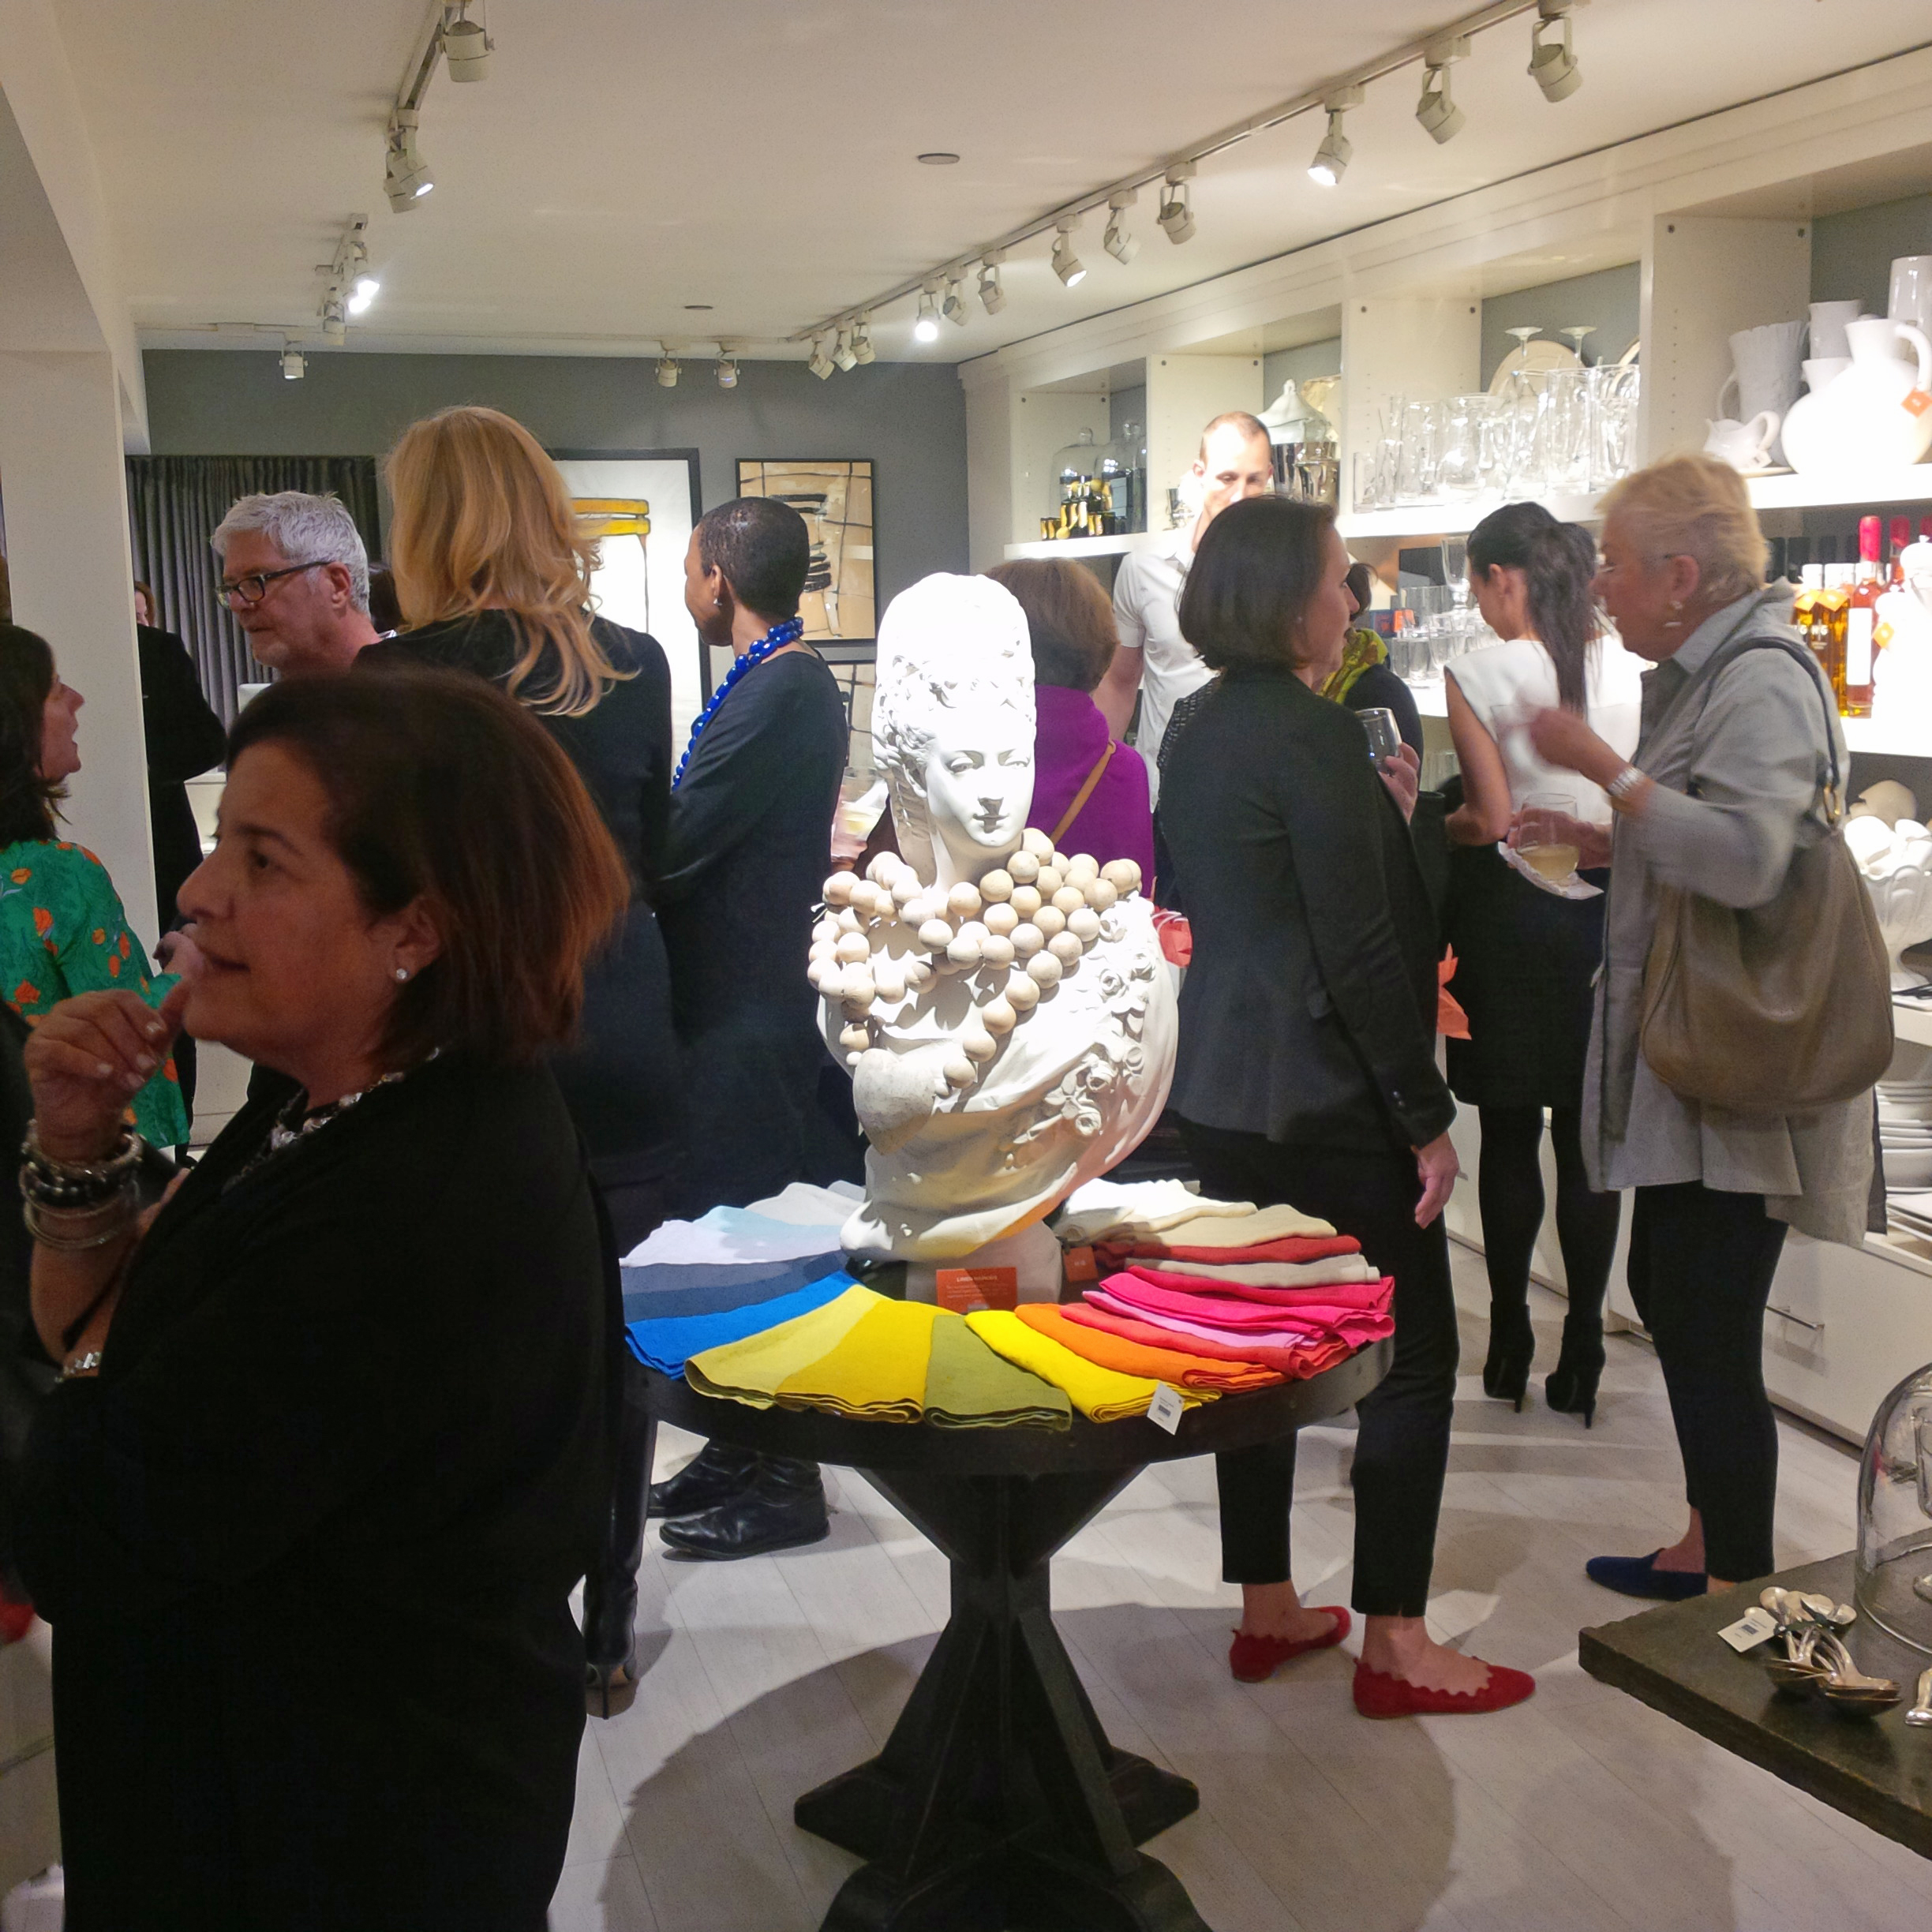 Hudson Grace proprietor Monelle Totah surrounded by her greater goods and design clientele.